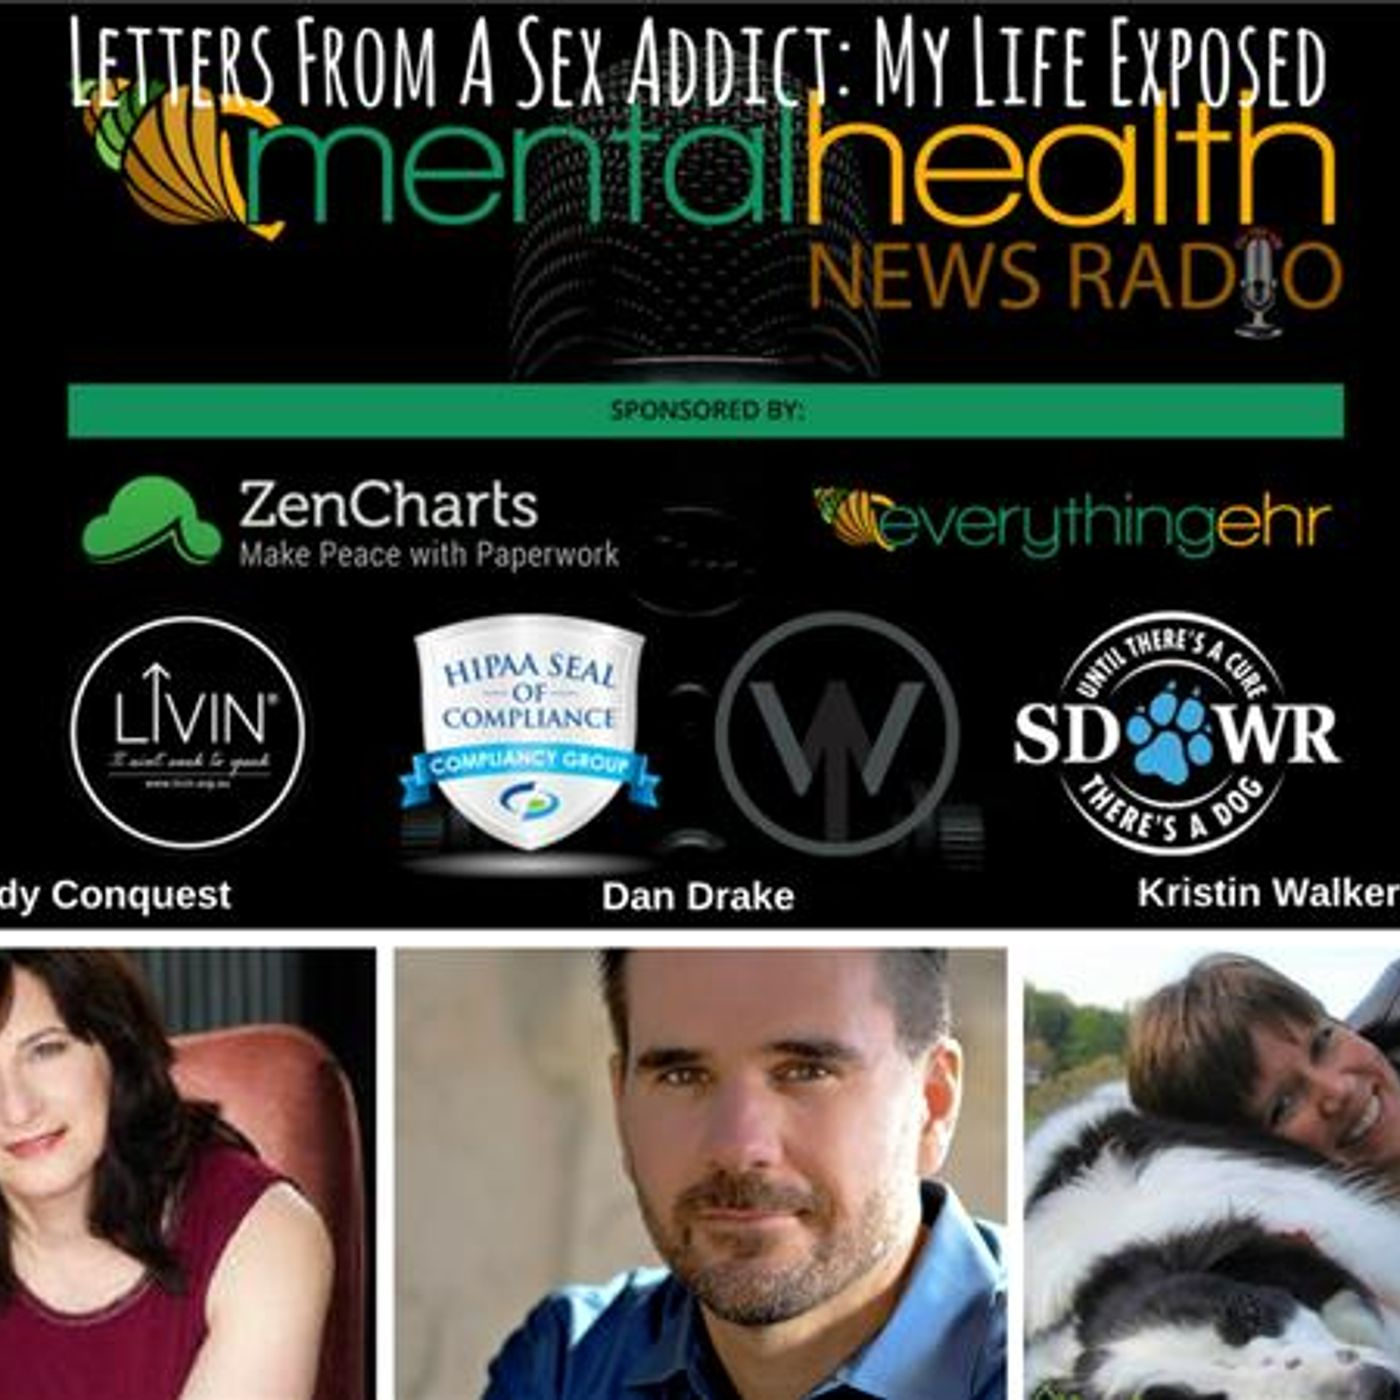 Mental Health News Radio - Letters From A Sex Addict: My Life Exposed with Wendy Conquest and Dan Drake